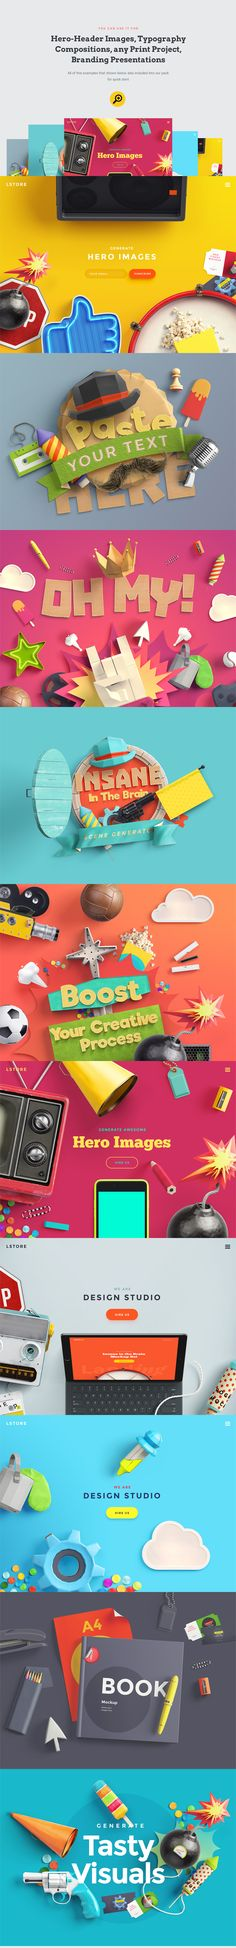 Create scenes in Photoshop easily and use graphics for individual or commercial projects • All the items are in high resolution and rendered with the same settings so that you can easily create customized scenes •Use mockups to customize items rapidly. Smart objects allow changing any item's design in just a few clicks • Use color masks with different materials to instantly change the color or fine tune the item's contrast • Lstore.graphics